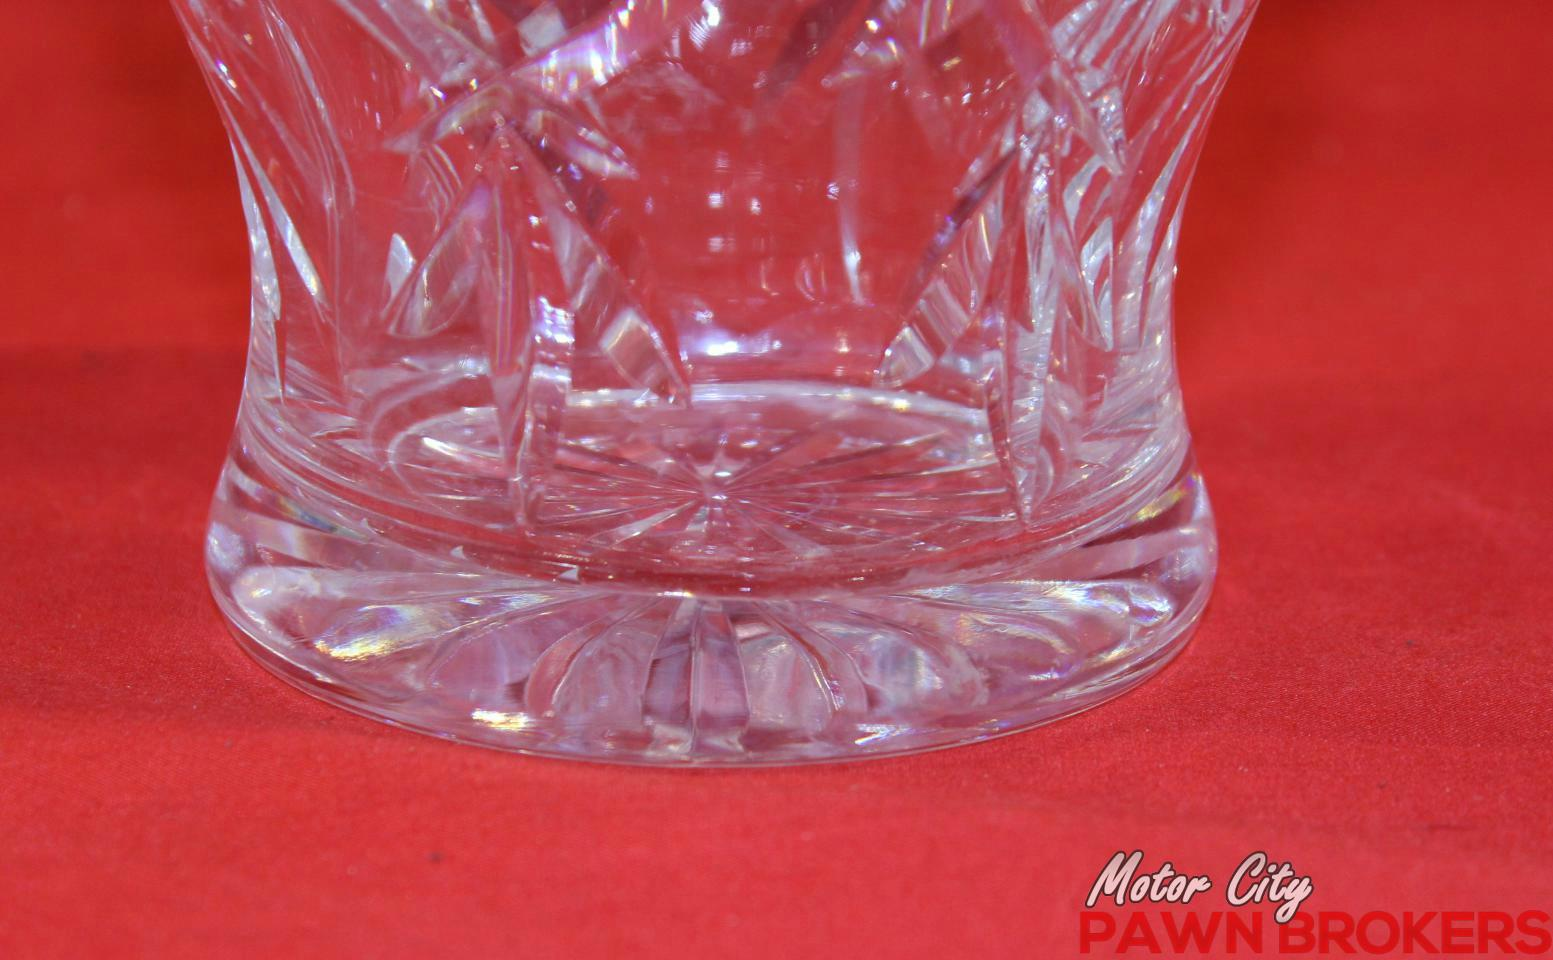 Waterford avoca crystal collectible vintage 13 for Motor city pawn brokers roseville mi